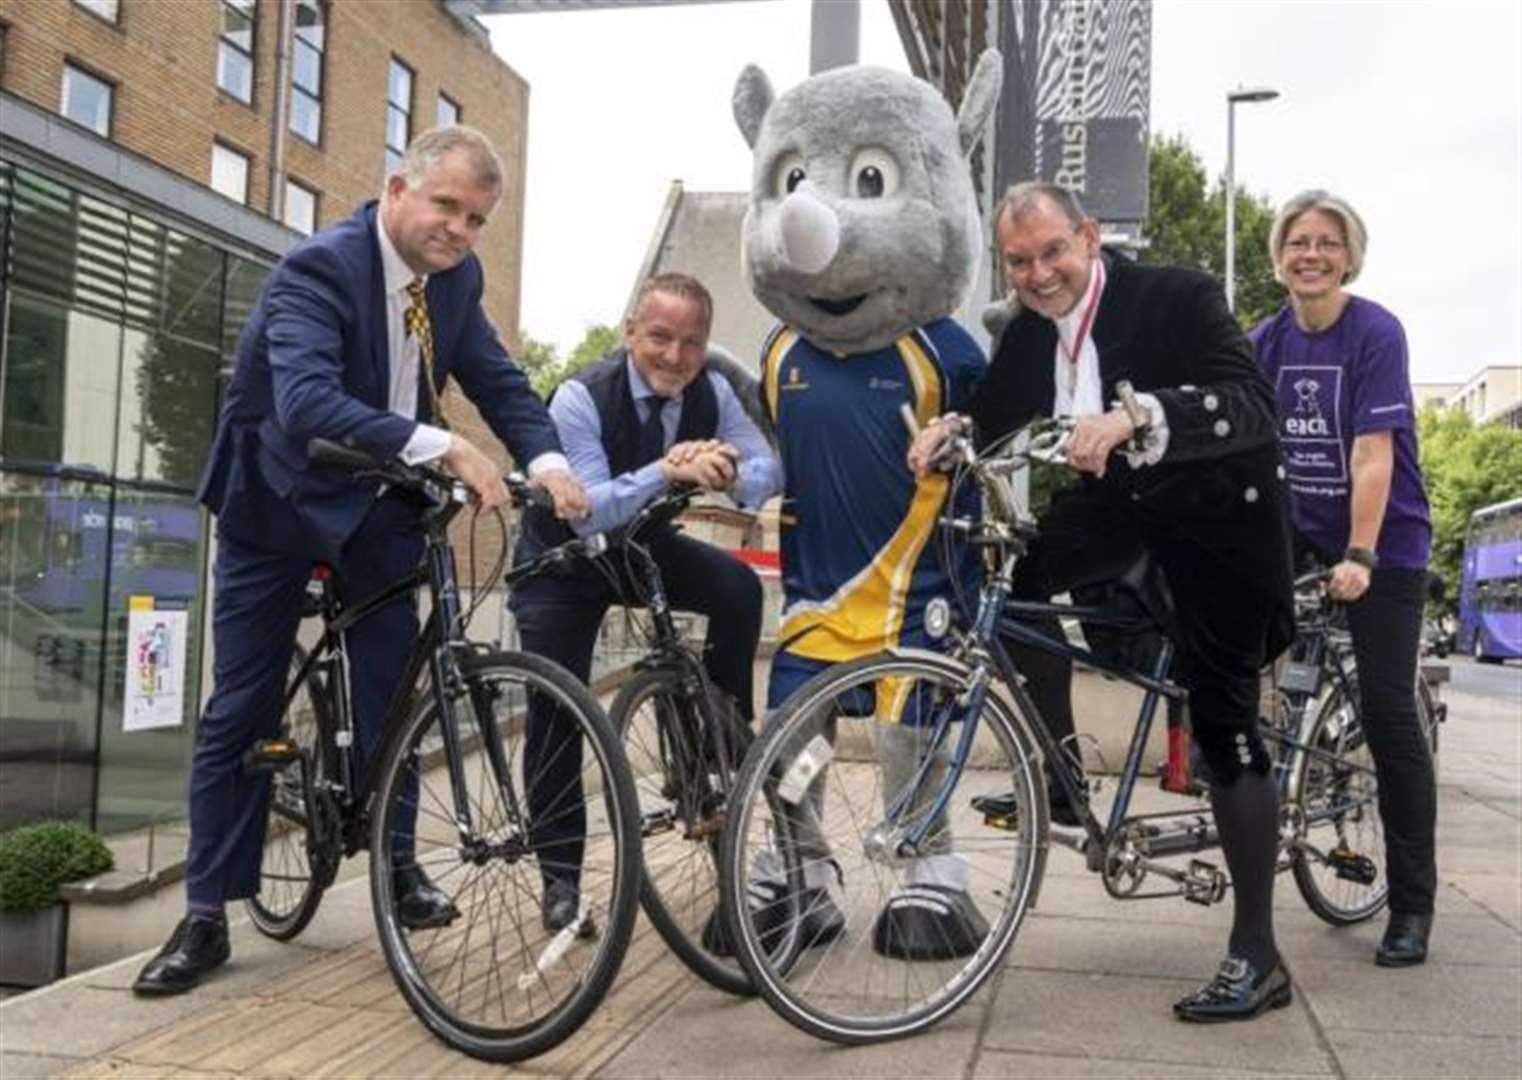 Sign up for 40-mile Cambridgeshire Cycling Challenge in aid of East Anglia's Children's Hospices